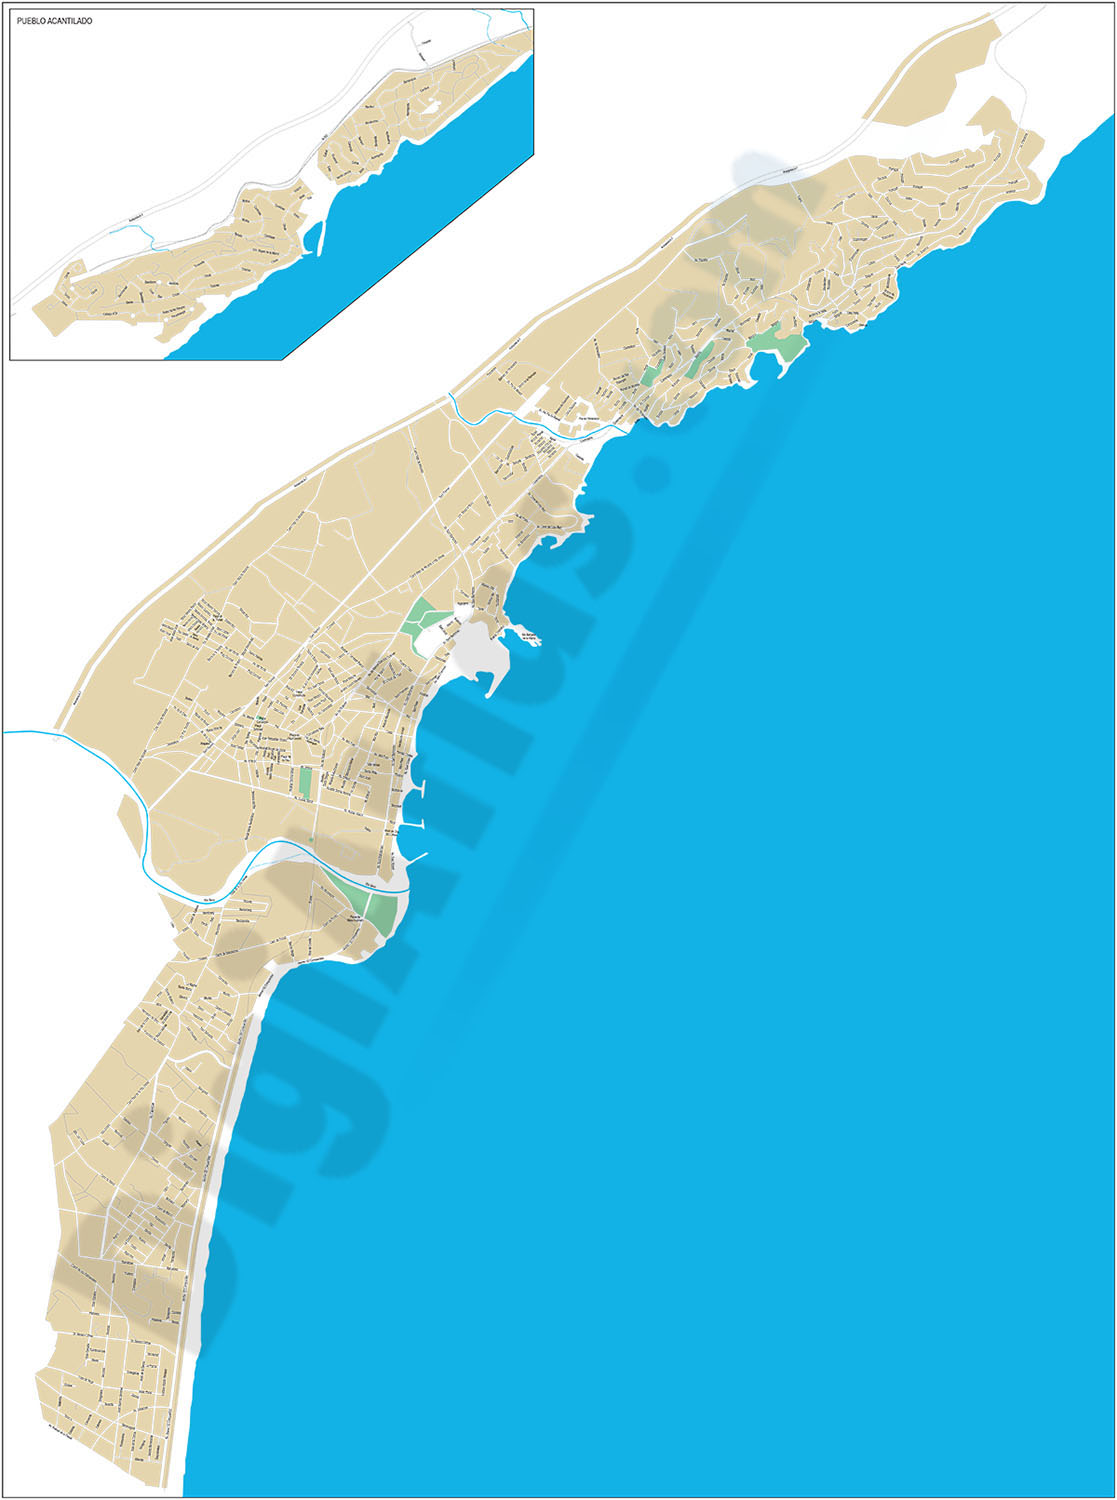 Campello (province of Alicante) - city map